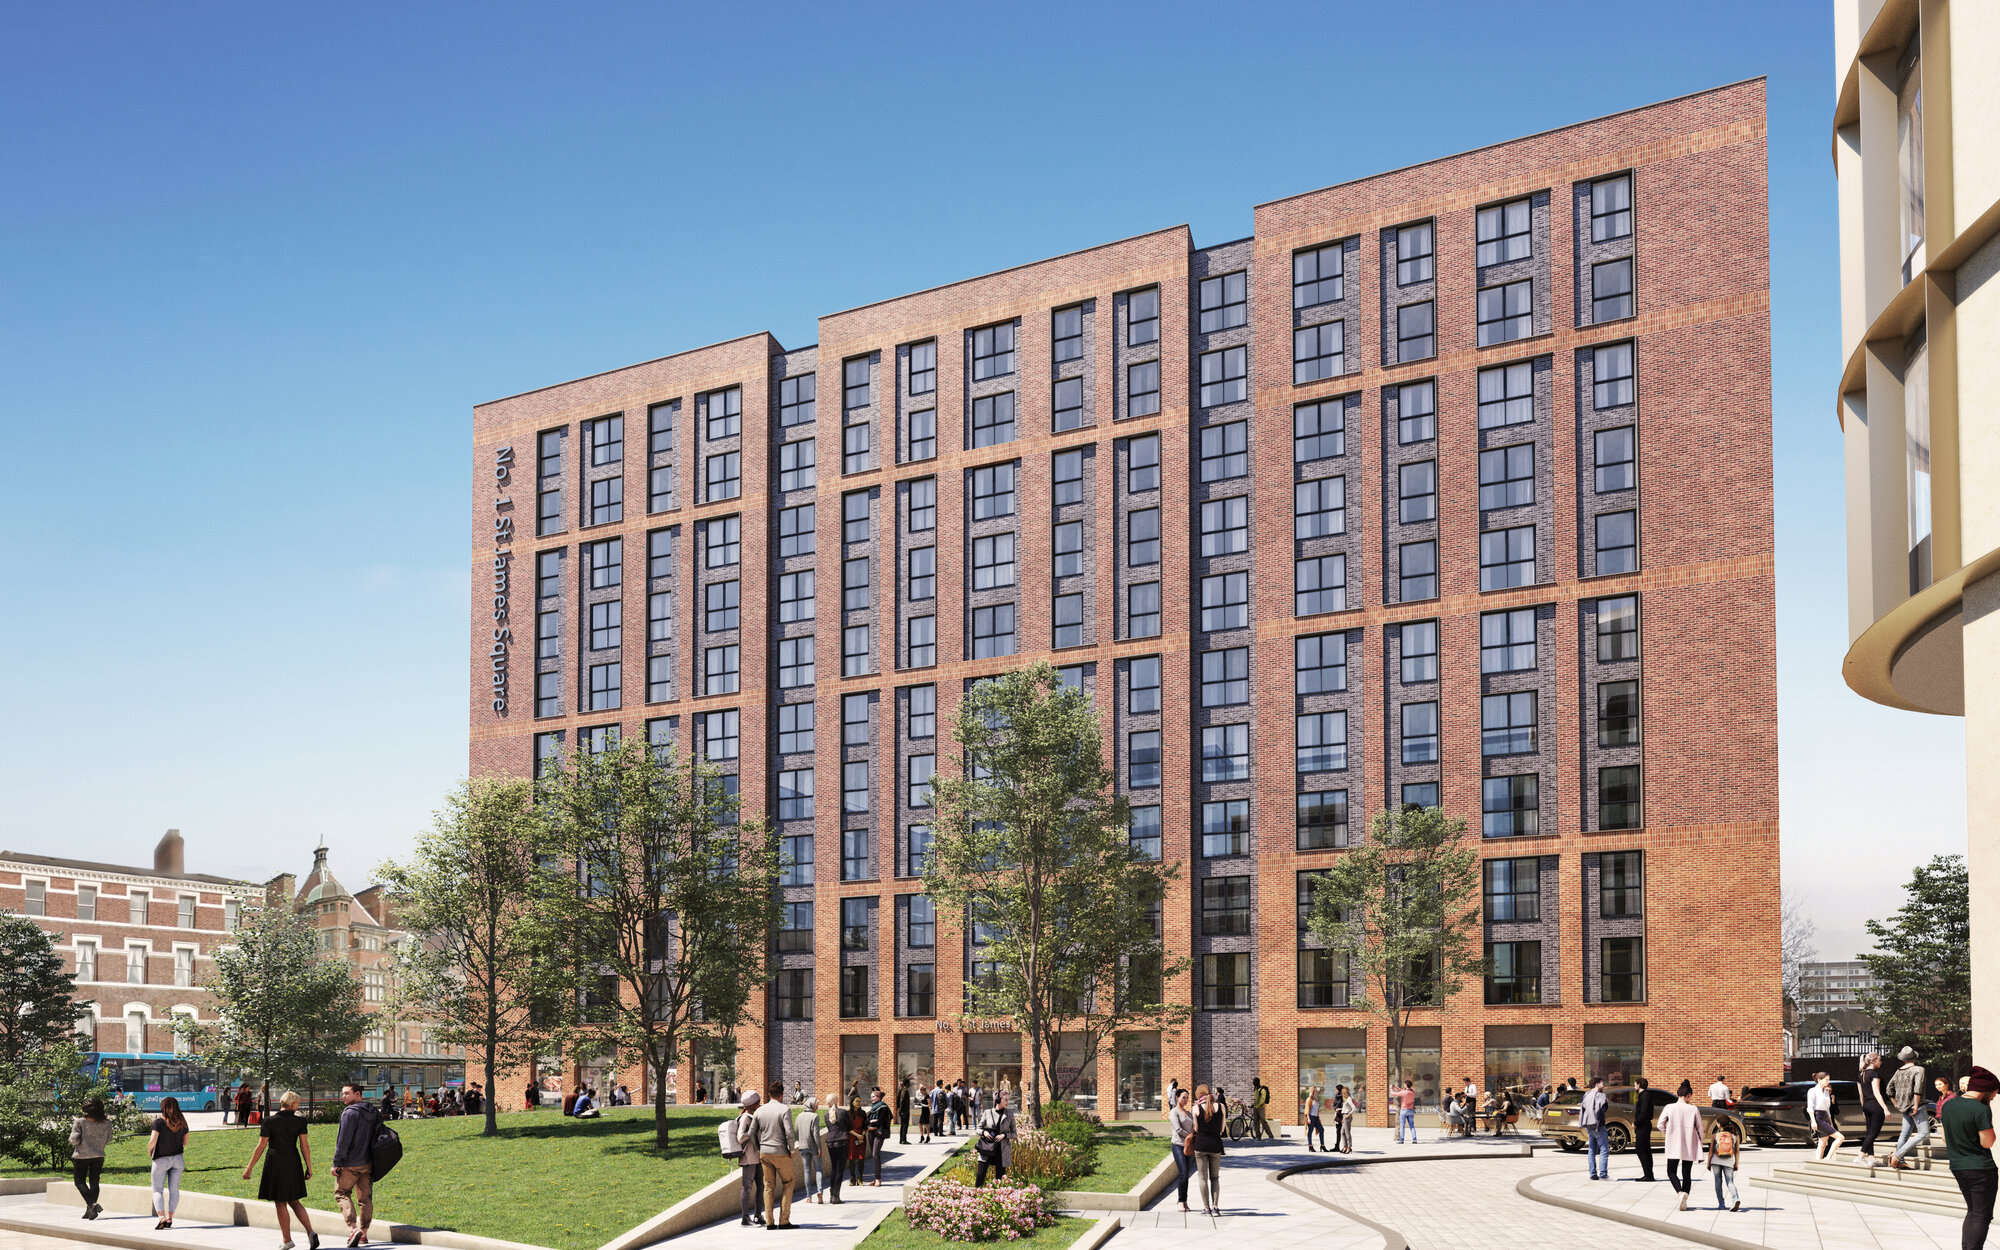 DETAILED PLANNING CONSENT GRANTED FOR FIRST PHASE OF £200M BECKETWELL SCHEME